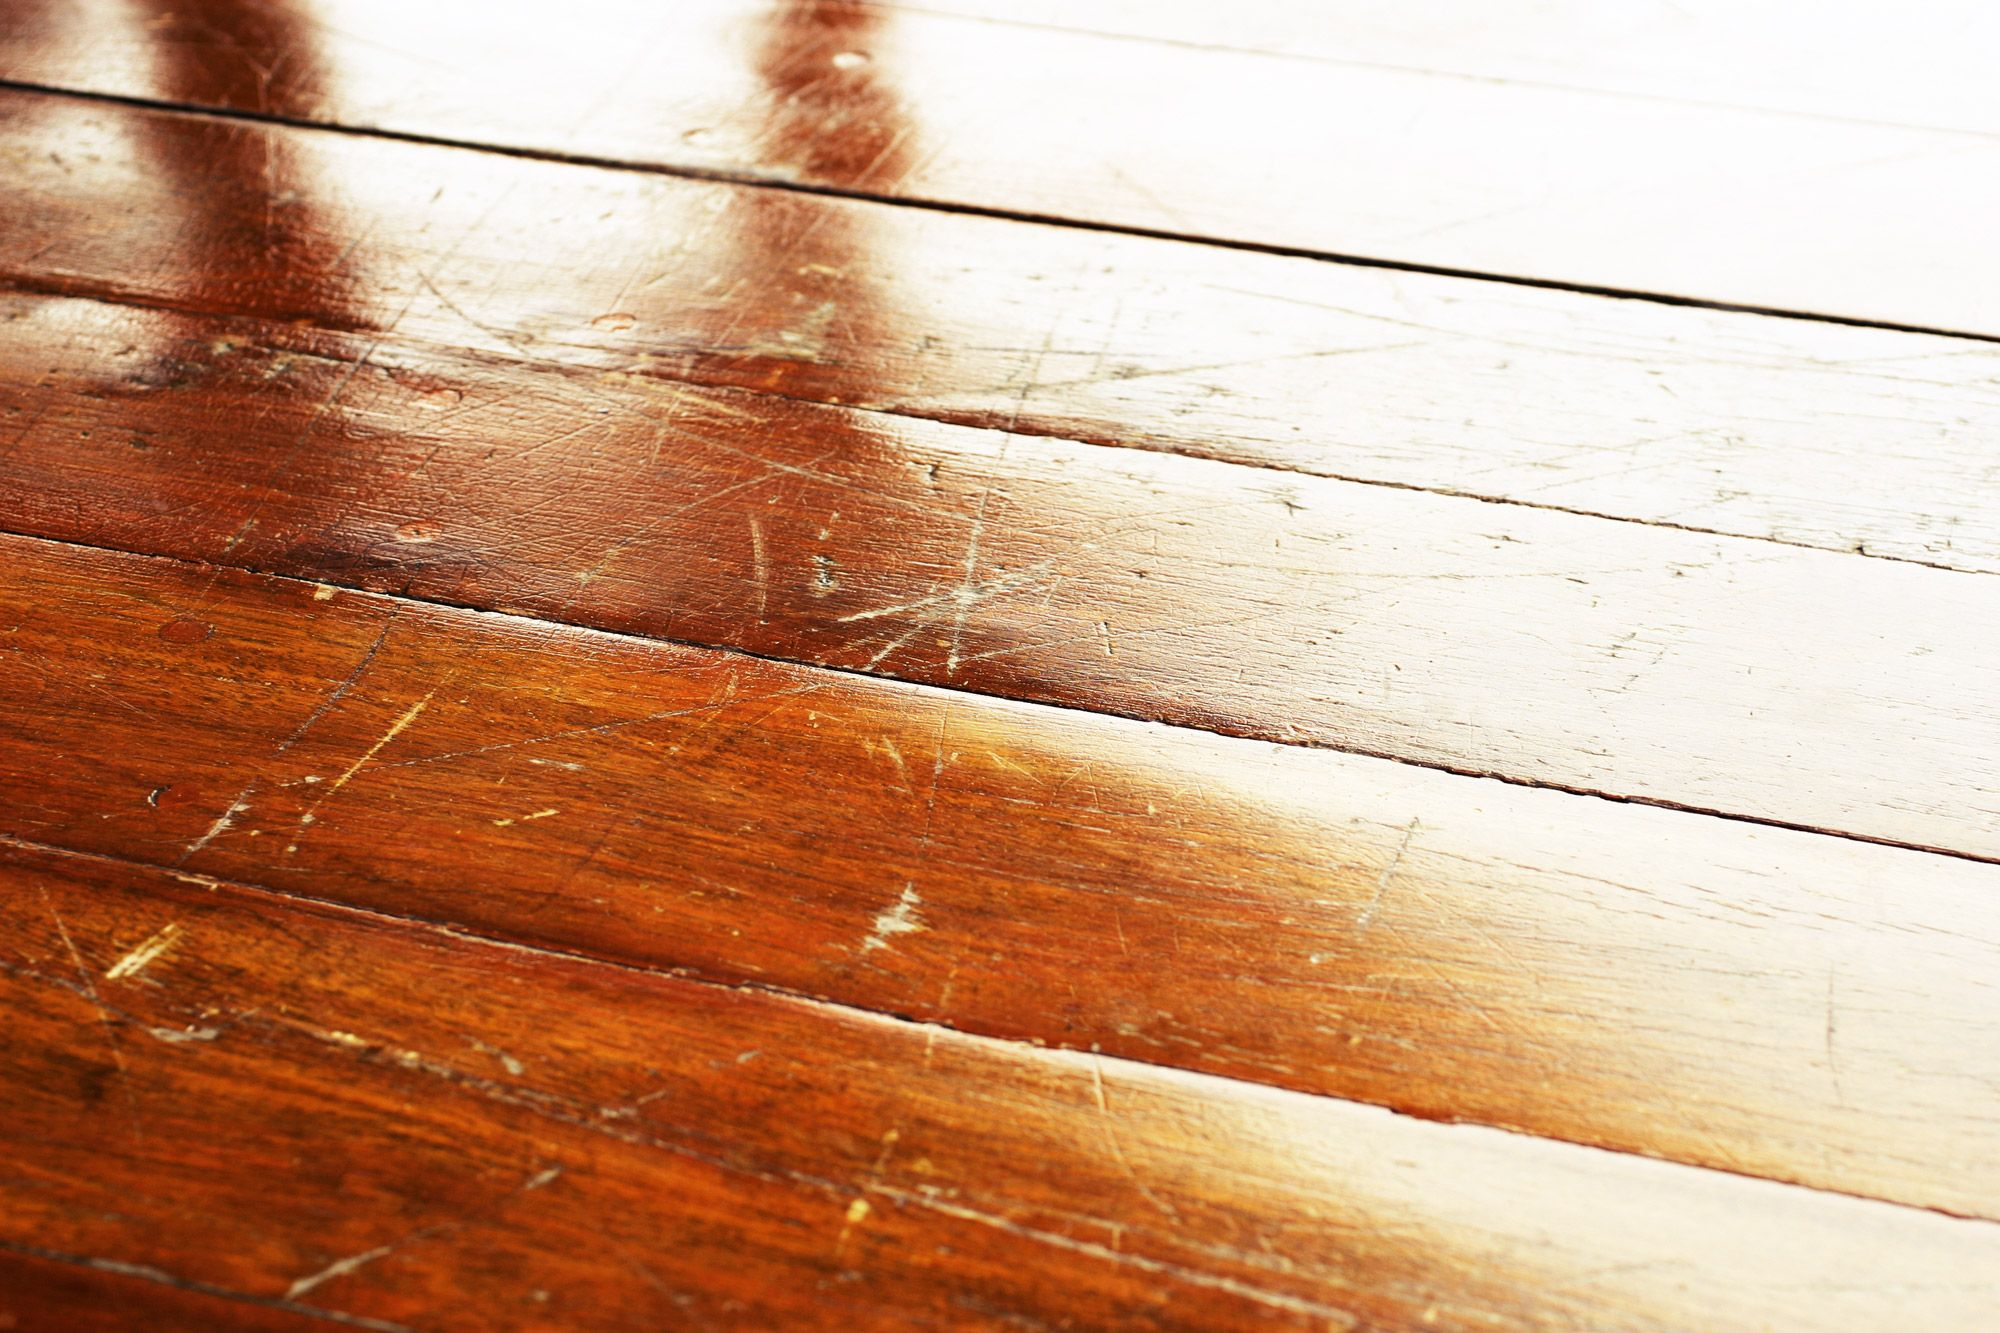 Perfect Follow These Step By Step Instructions To Fix Your Floor Problems.